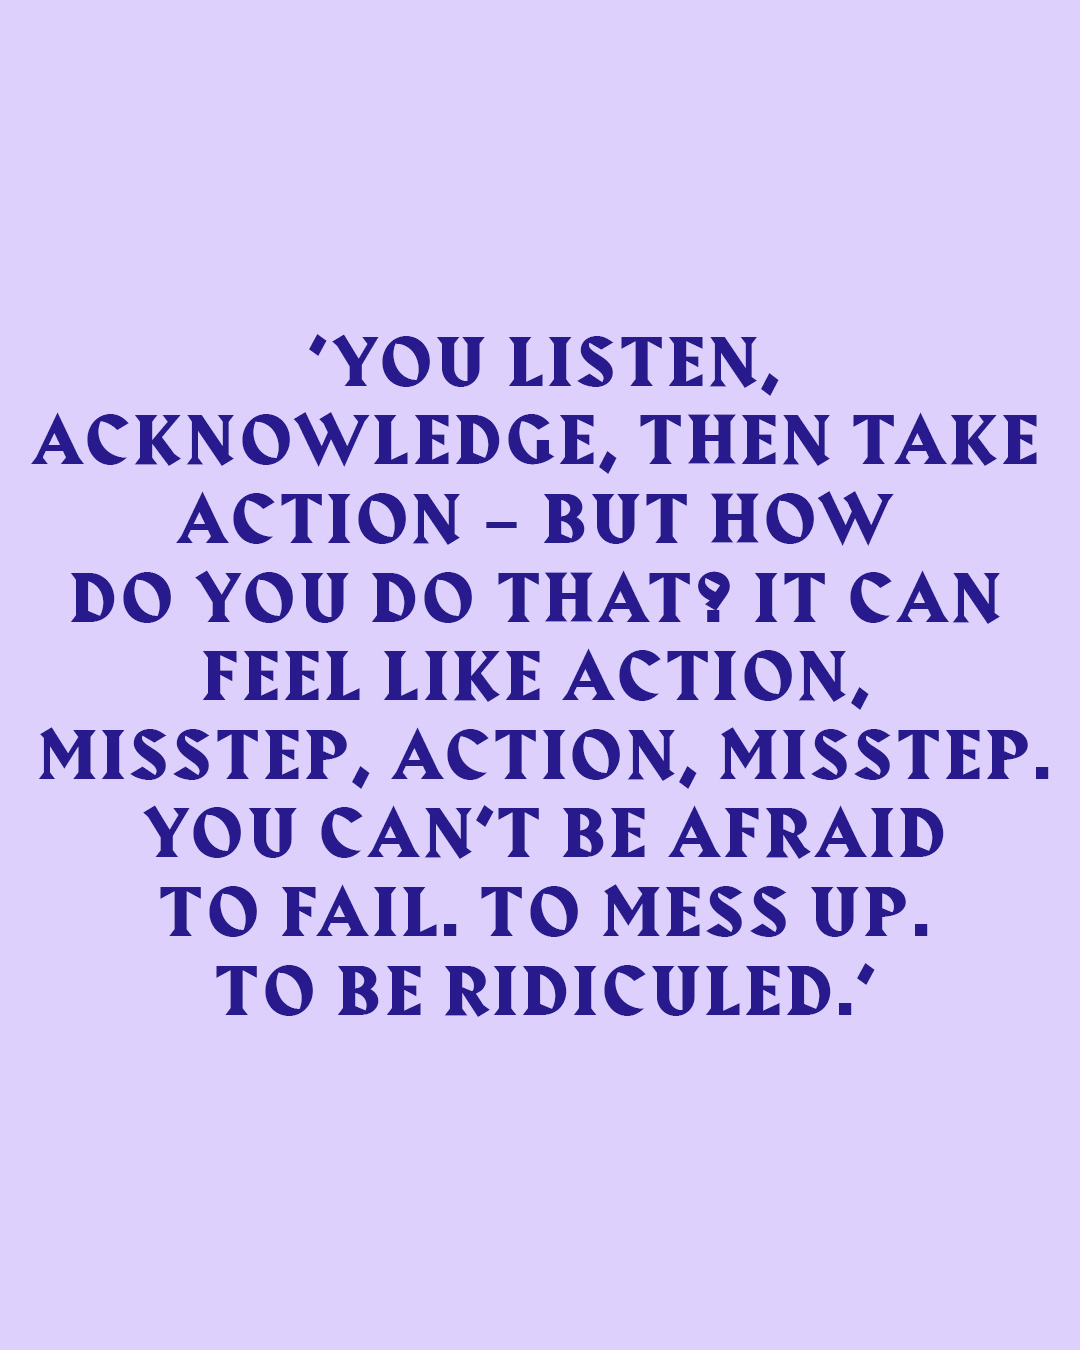 MWTB_GWSF_07.02.2019Quote 2 Purple.jpg